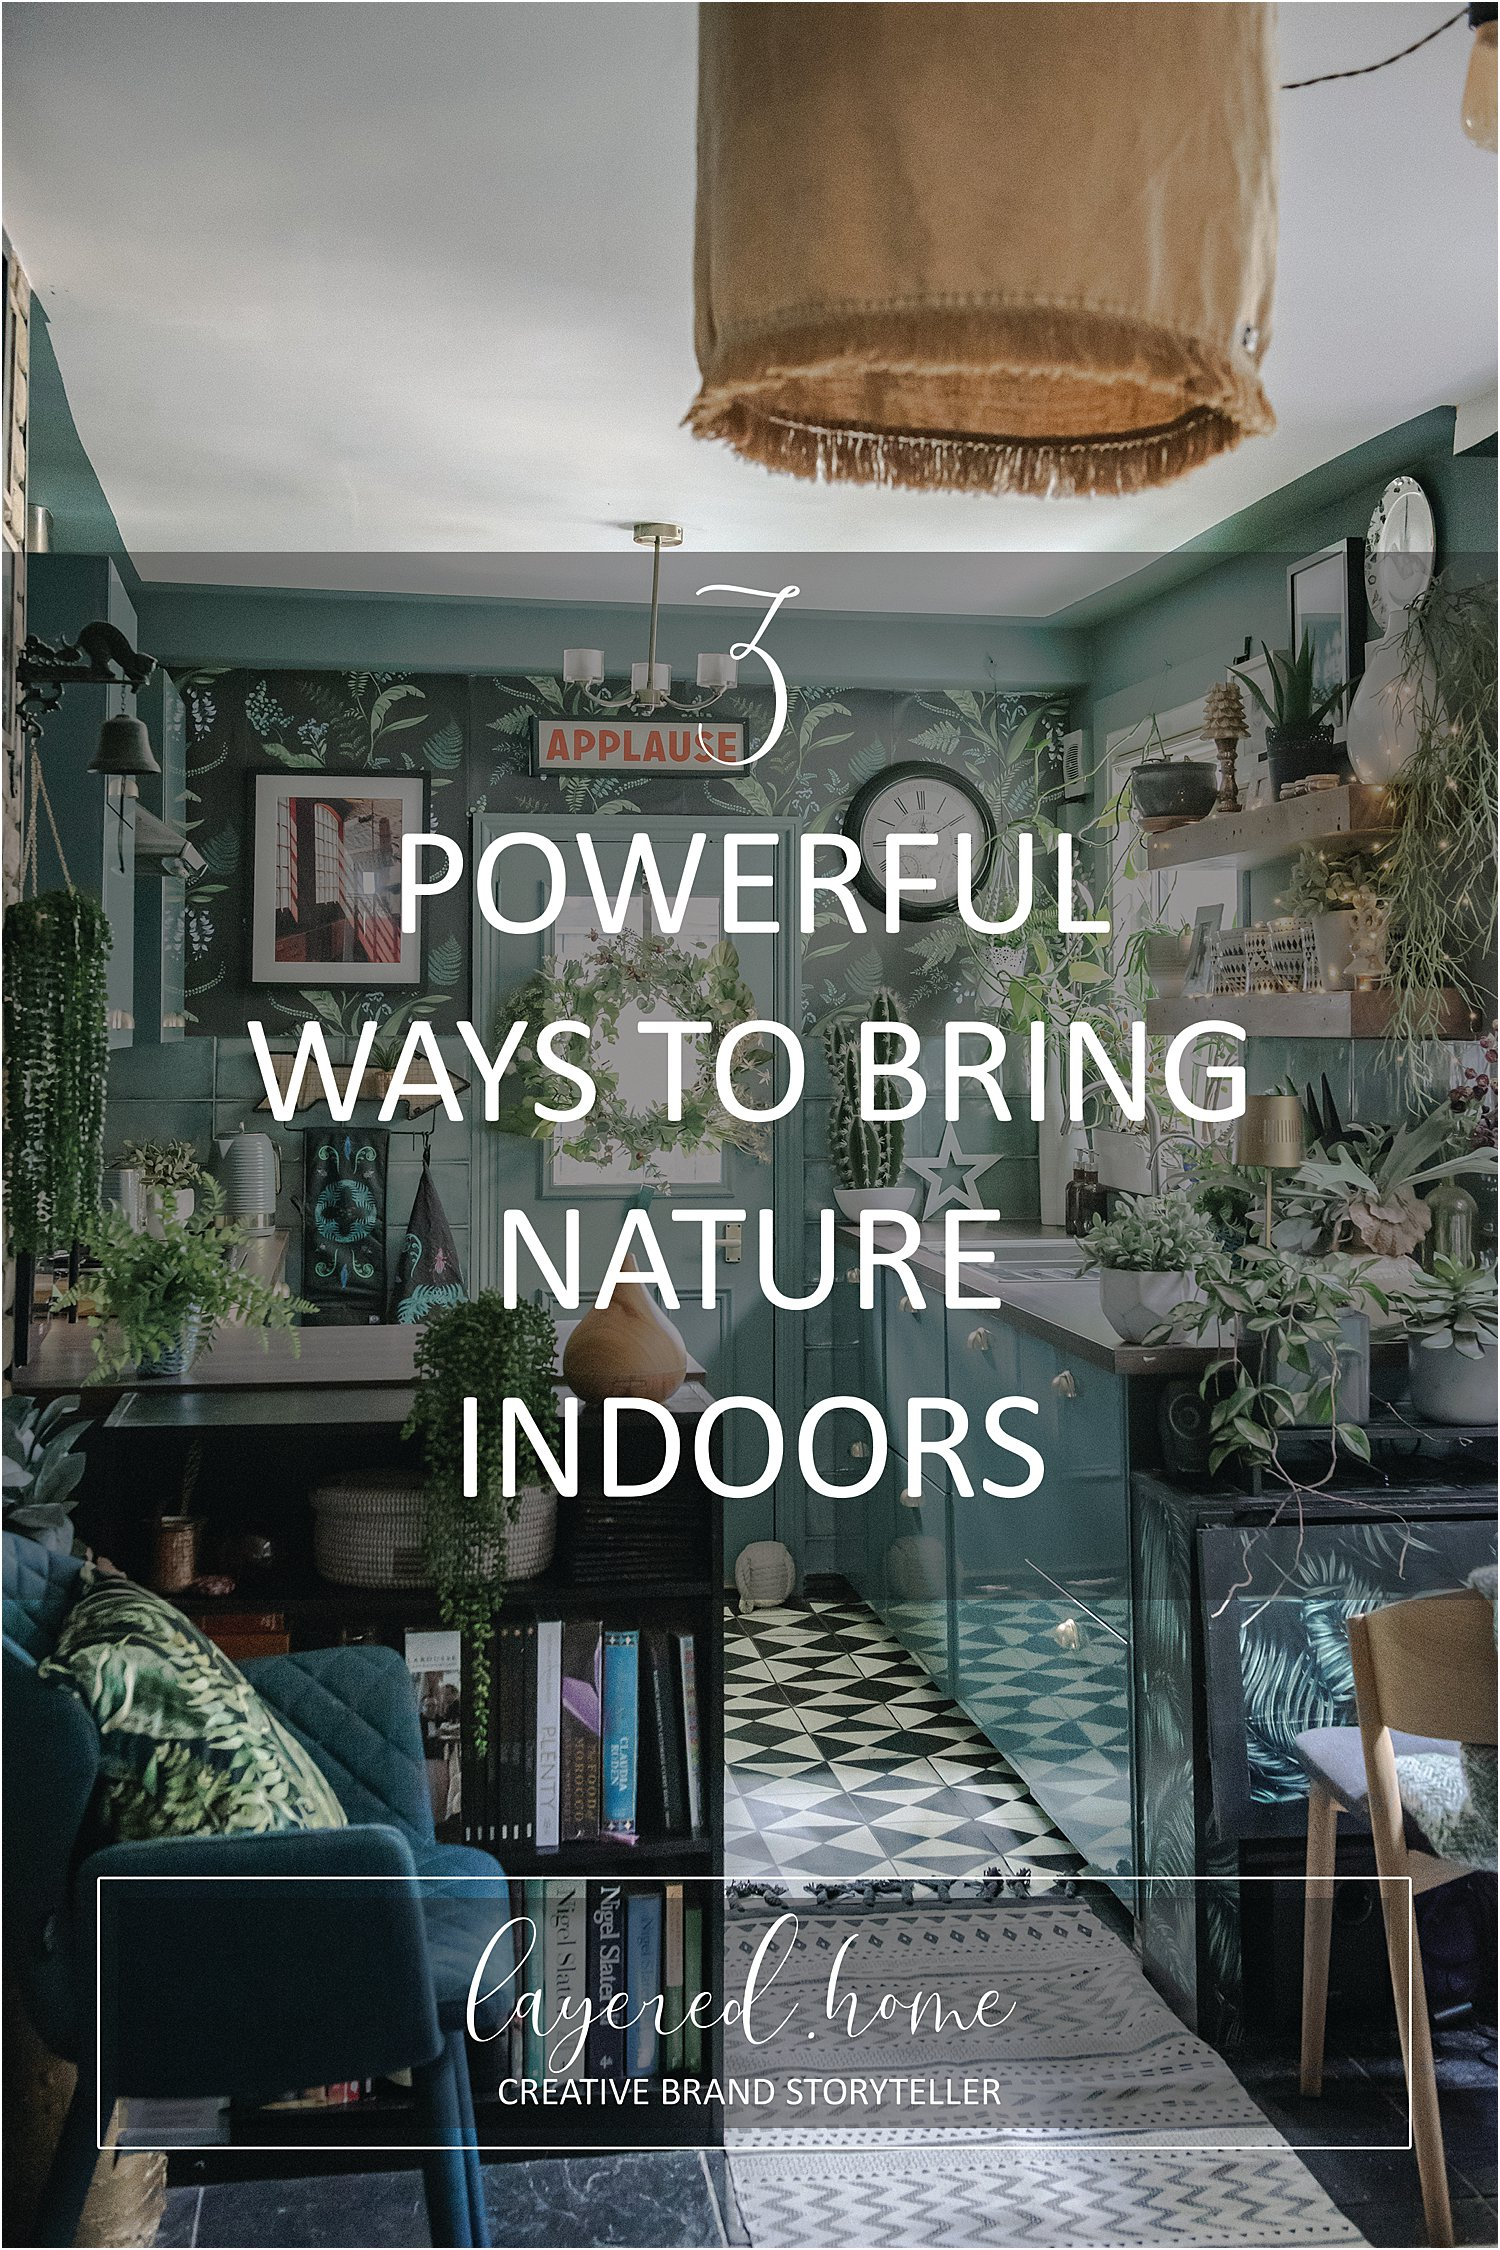 3-powerful-ways-to-bring-nature-indoors-smellacloud-diffuser-essential-oi